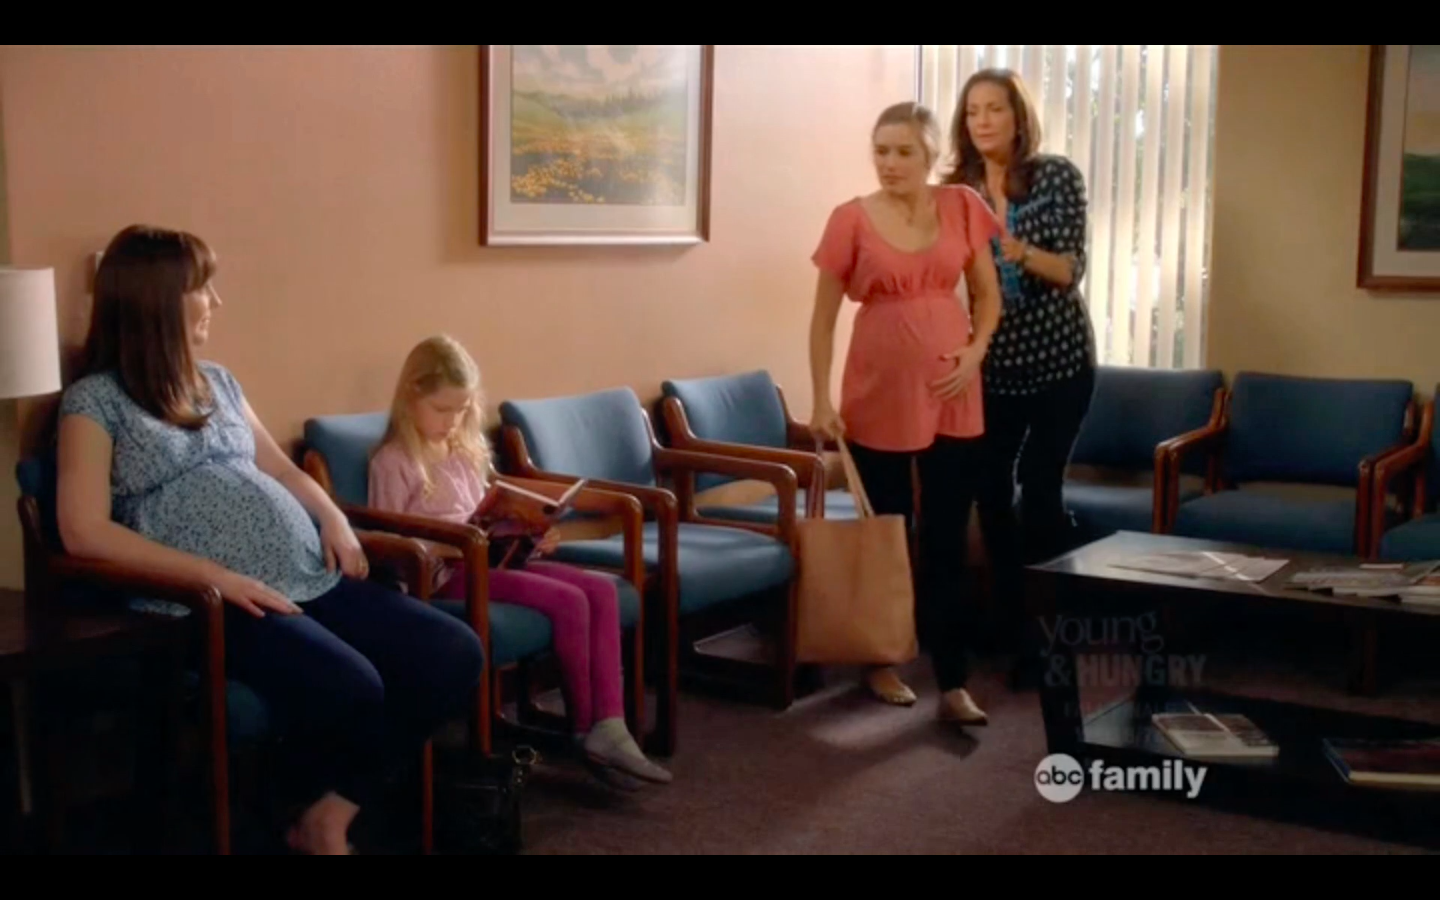 Switched at Birth, Episode 4018 - Erin Barnes, Rachel Shenton, & Constance Marie